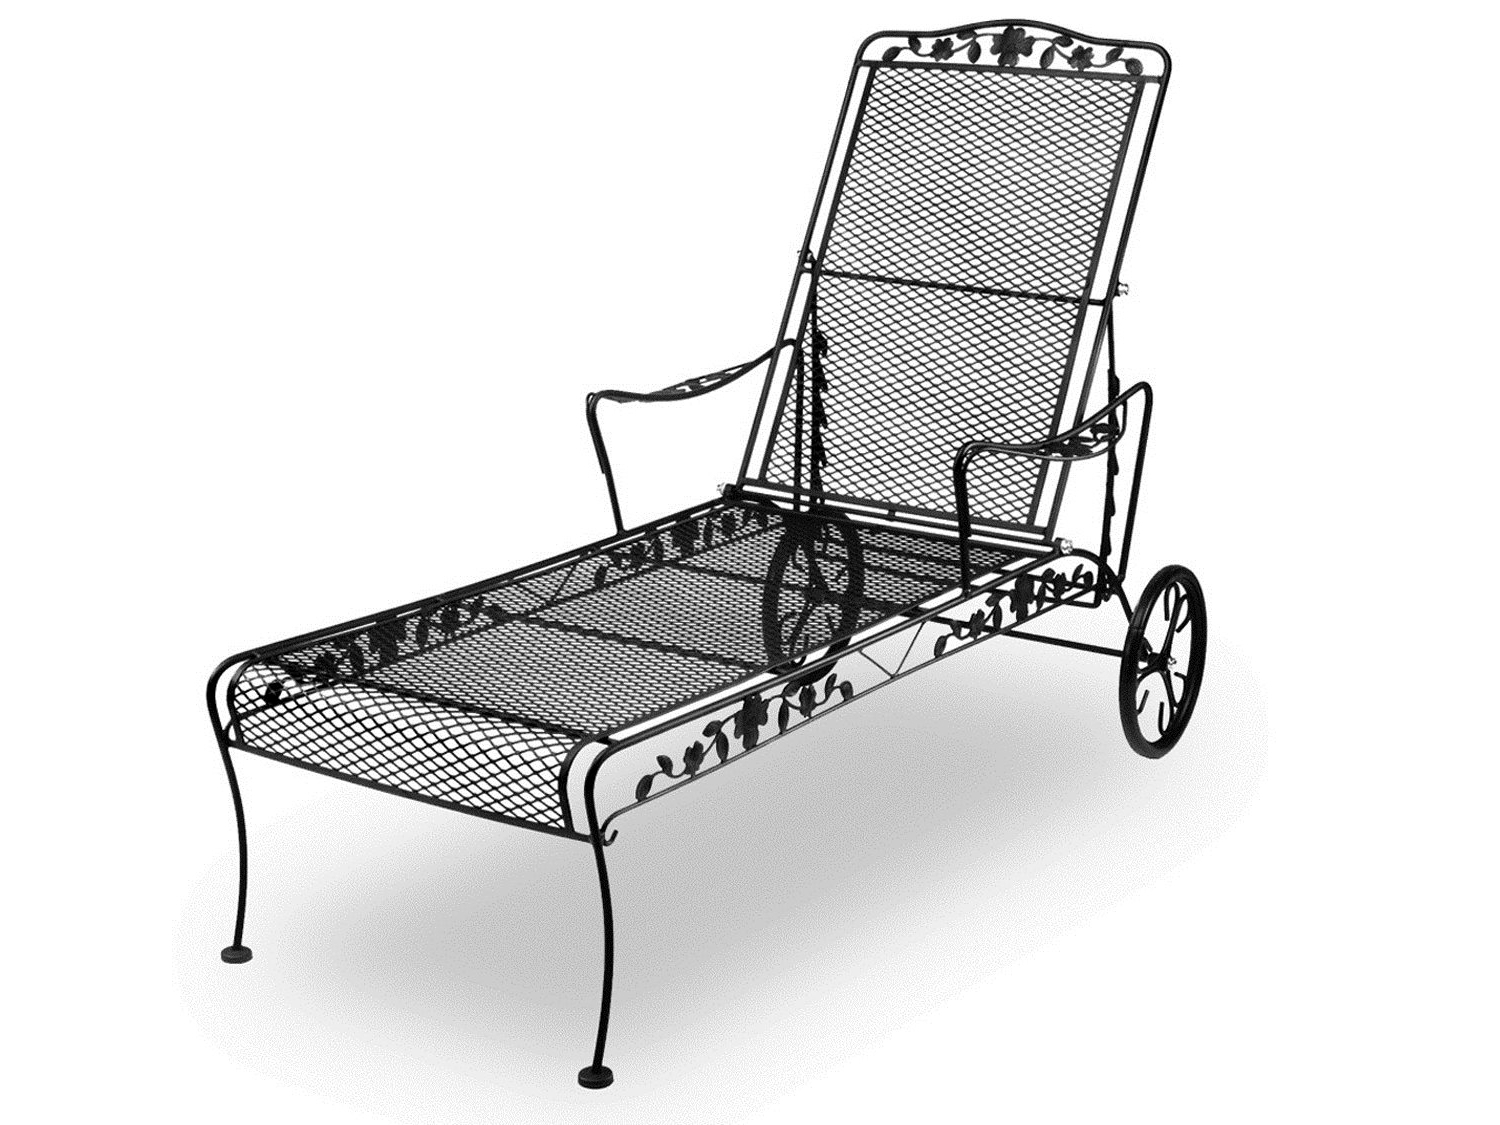 Wrought Iron Chaise Lounge Chairs • Lounge Chairs Ideas Pertaining To Preferred Wrought Iron Outdoor Chaise Lounge Chairs (View 10 of 15)